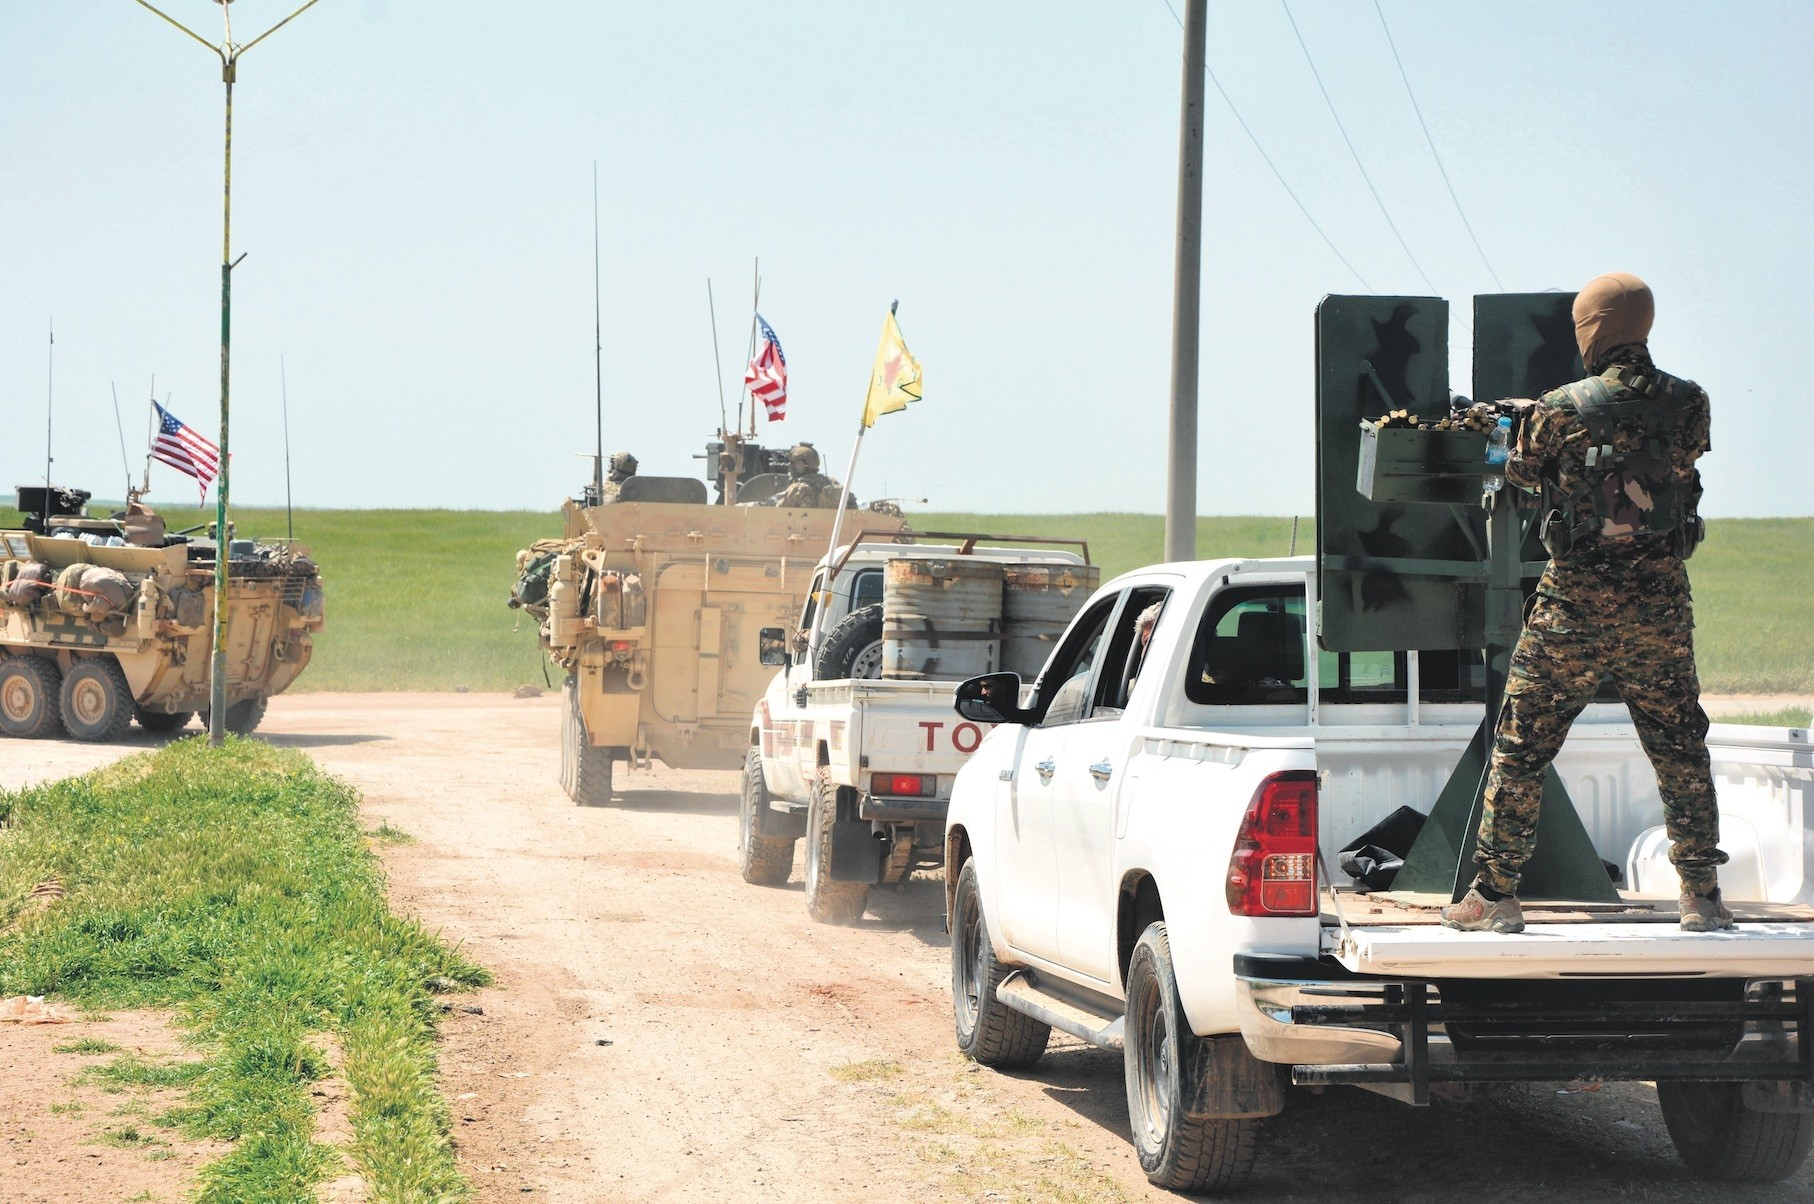 A convoy of U.S. troops and YPG terrorists patrol near the Syrian town of al-Darbasiyah at the Syrian-Turkish border, April 29.